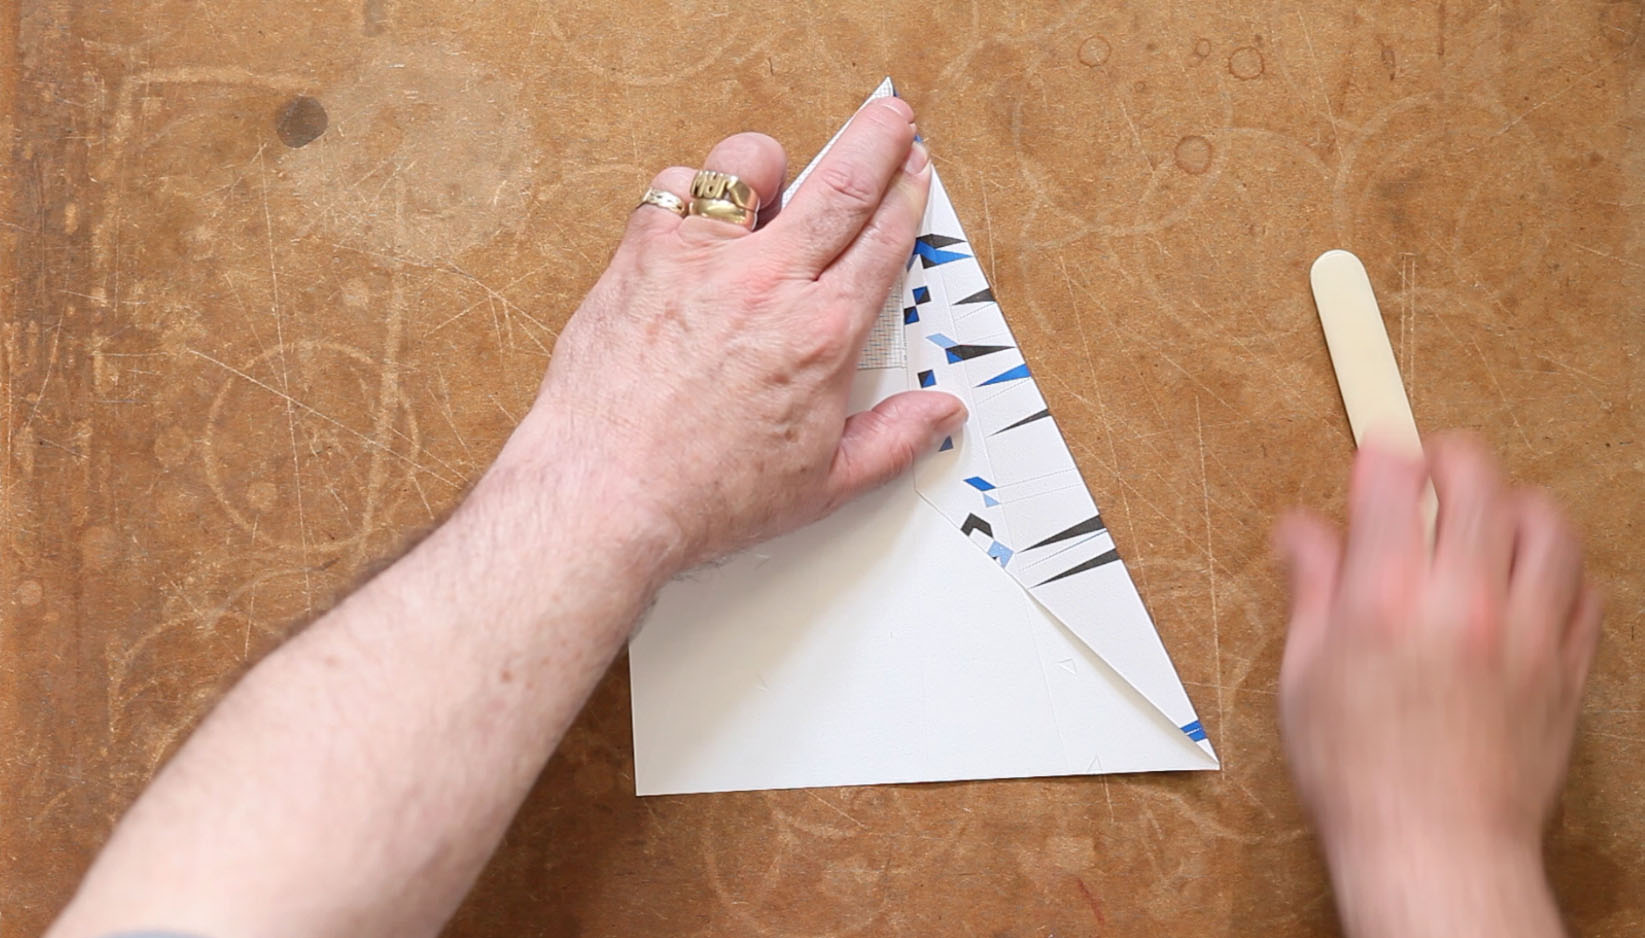 A film still showing a Paper Plane being folded by hand